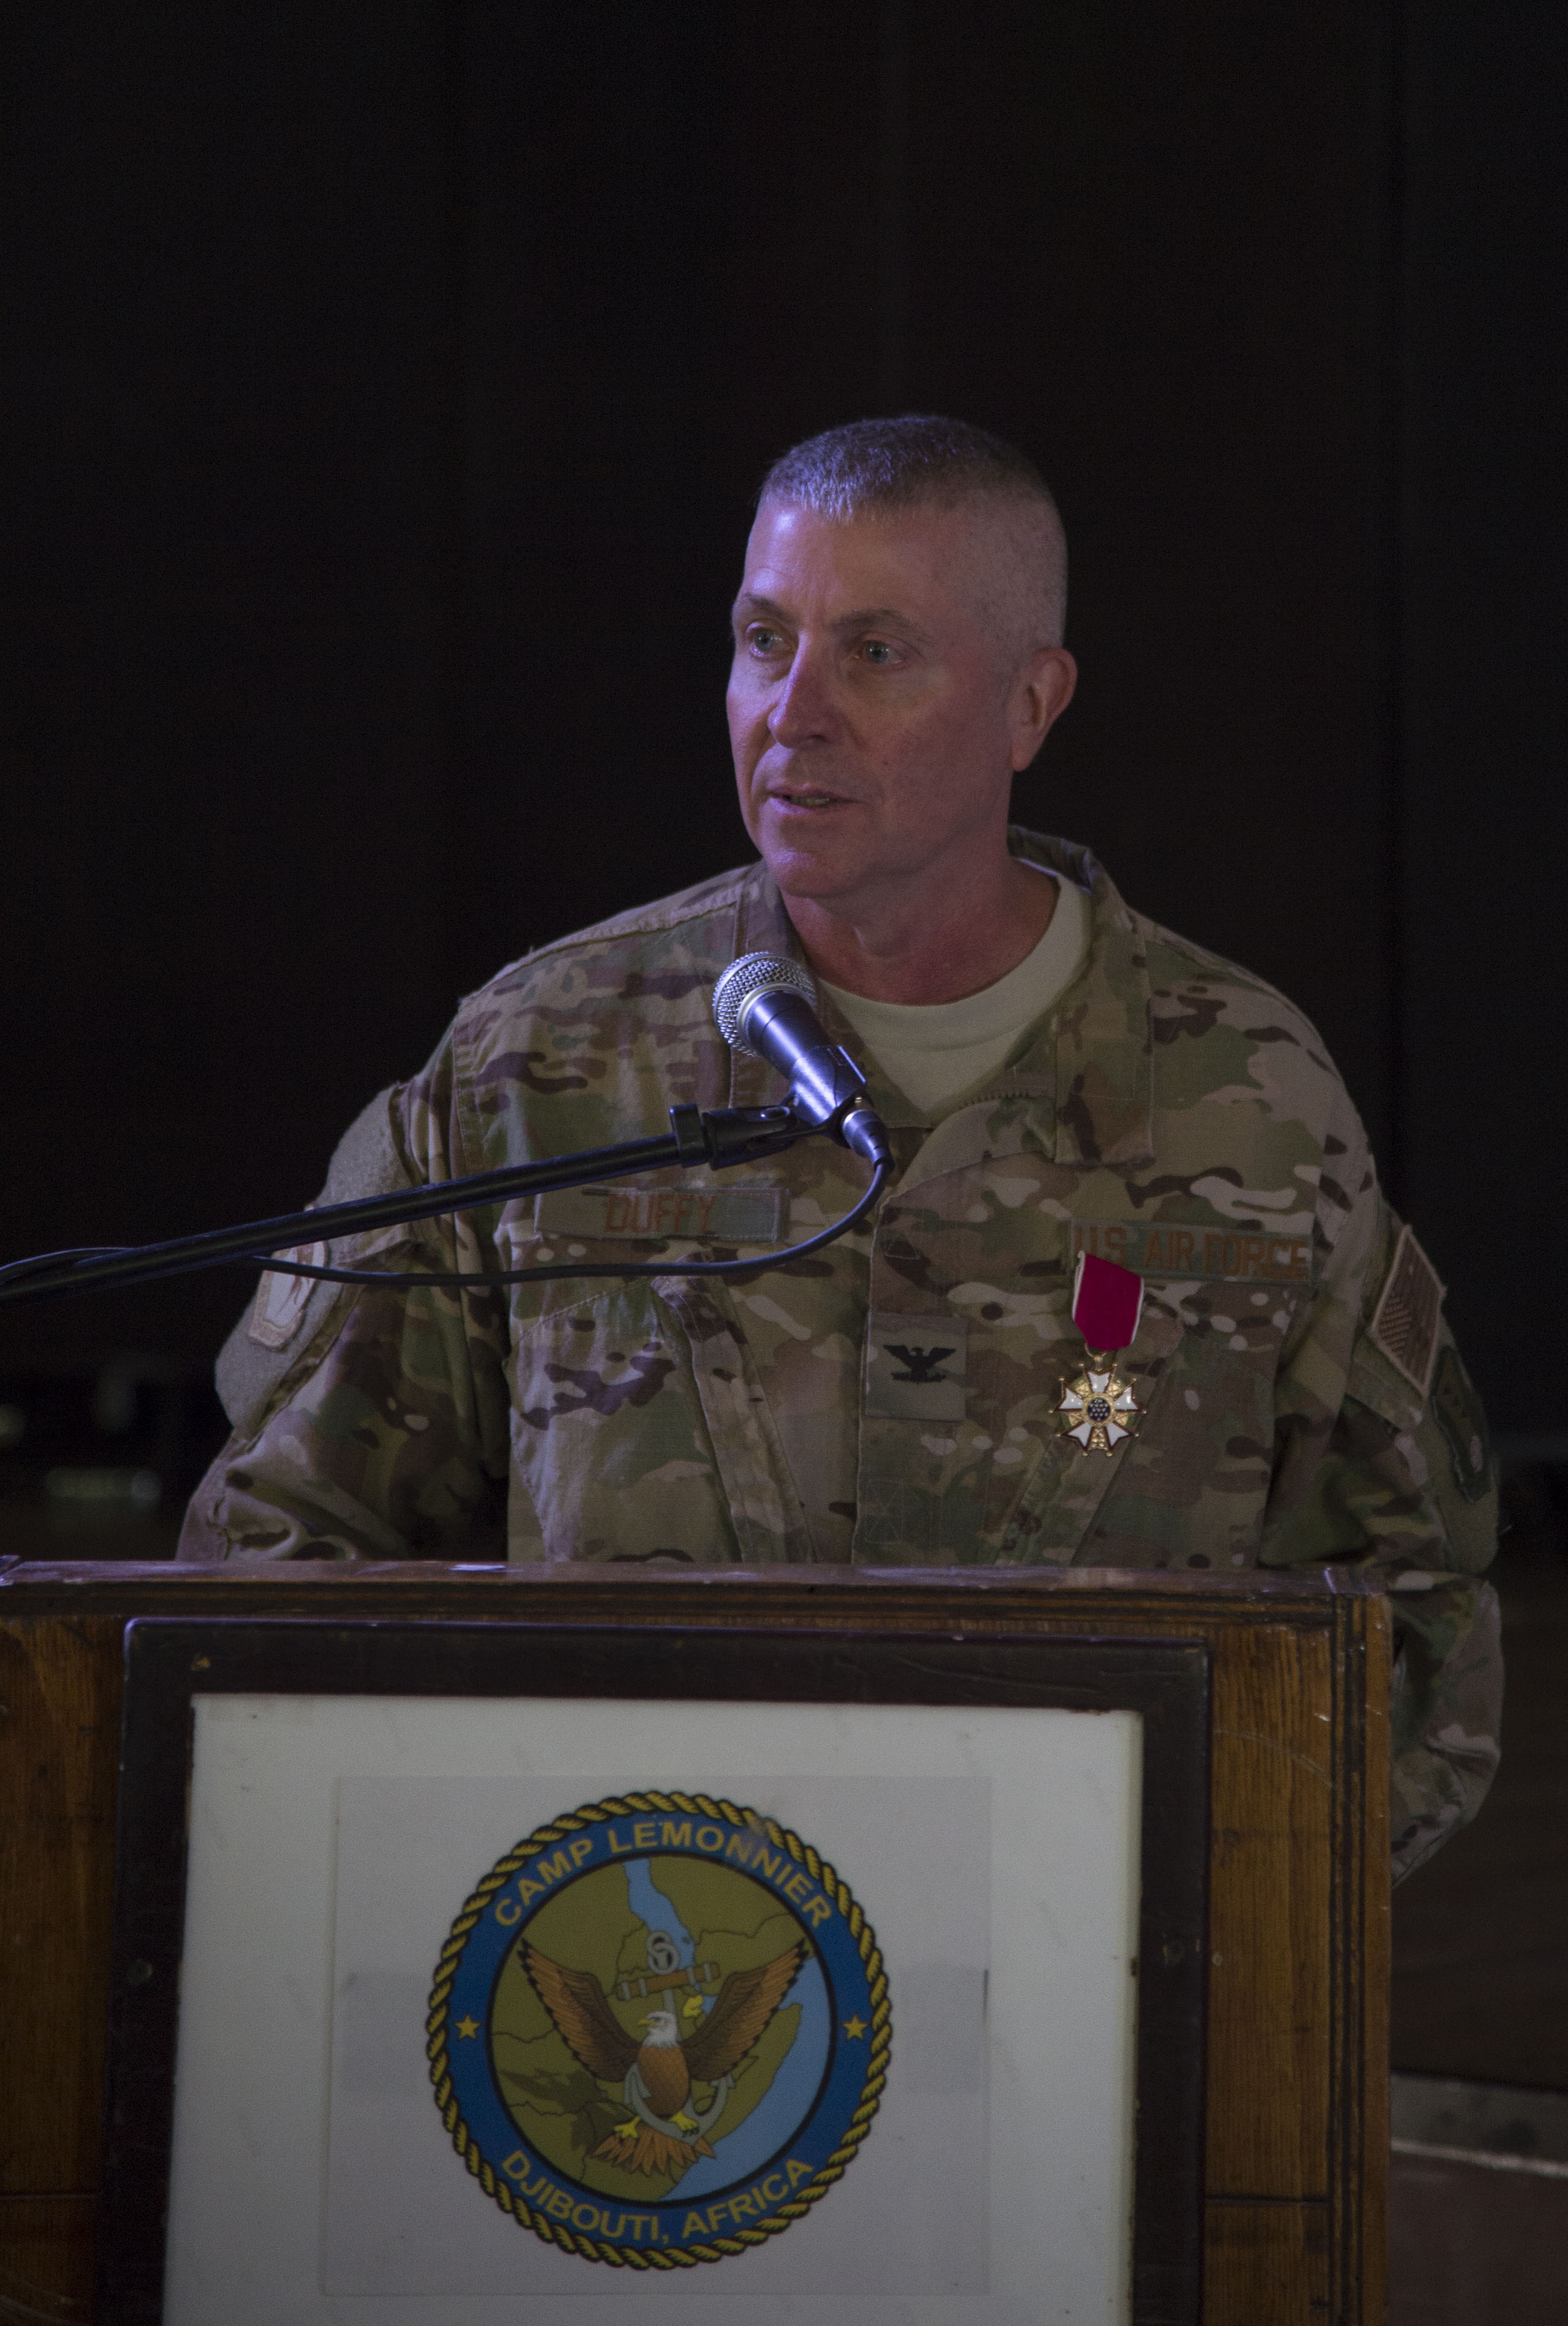 U.S. Air Force Col. Daniel Duffy, 449th Air Expeditionary Group outgoing commander, makes final remarks to the men and women of the group during the 449th AEG Change of Command ceremony June 6, 2016, at Camp Lemonnier, Djibouti. The 449th AEG is assigned to U.S. Air Forces Africa and conducts personnel recovery and other operations in support of activities for Air Forces Africa and Combined Joint Task Force-Horn of Africa. (U.S. Air Force photo by Staff Sgt. Eric Summers Jr.)